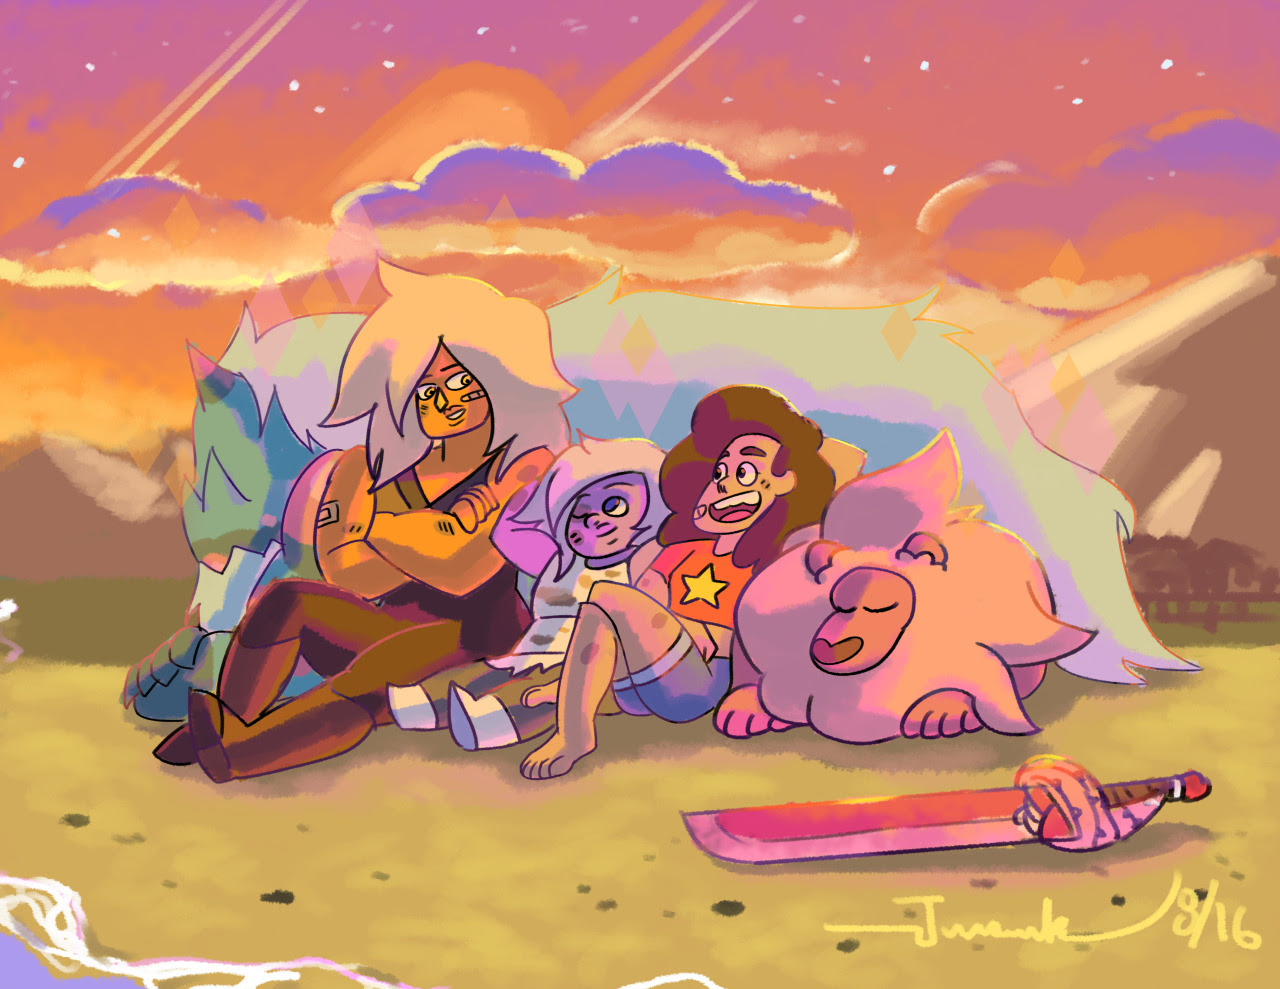 """Best Fight Ever! This summer of Steven Universe has been overwhelming with feels and action! (Mostly feels) But what really excited me was """"Crack the Whip"""" because of the epic Stevonnie vs Jasper..."""